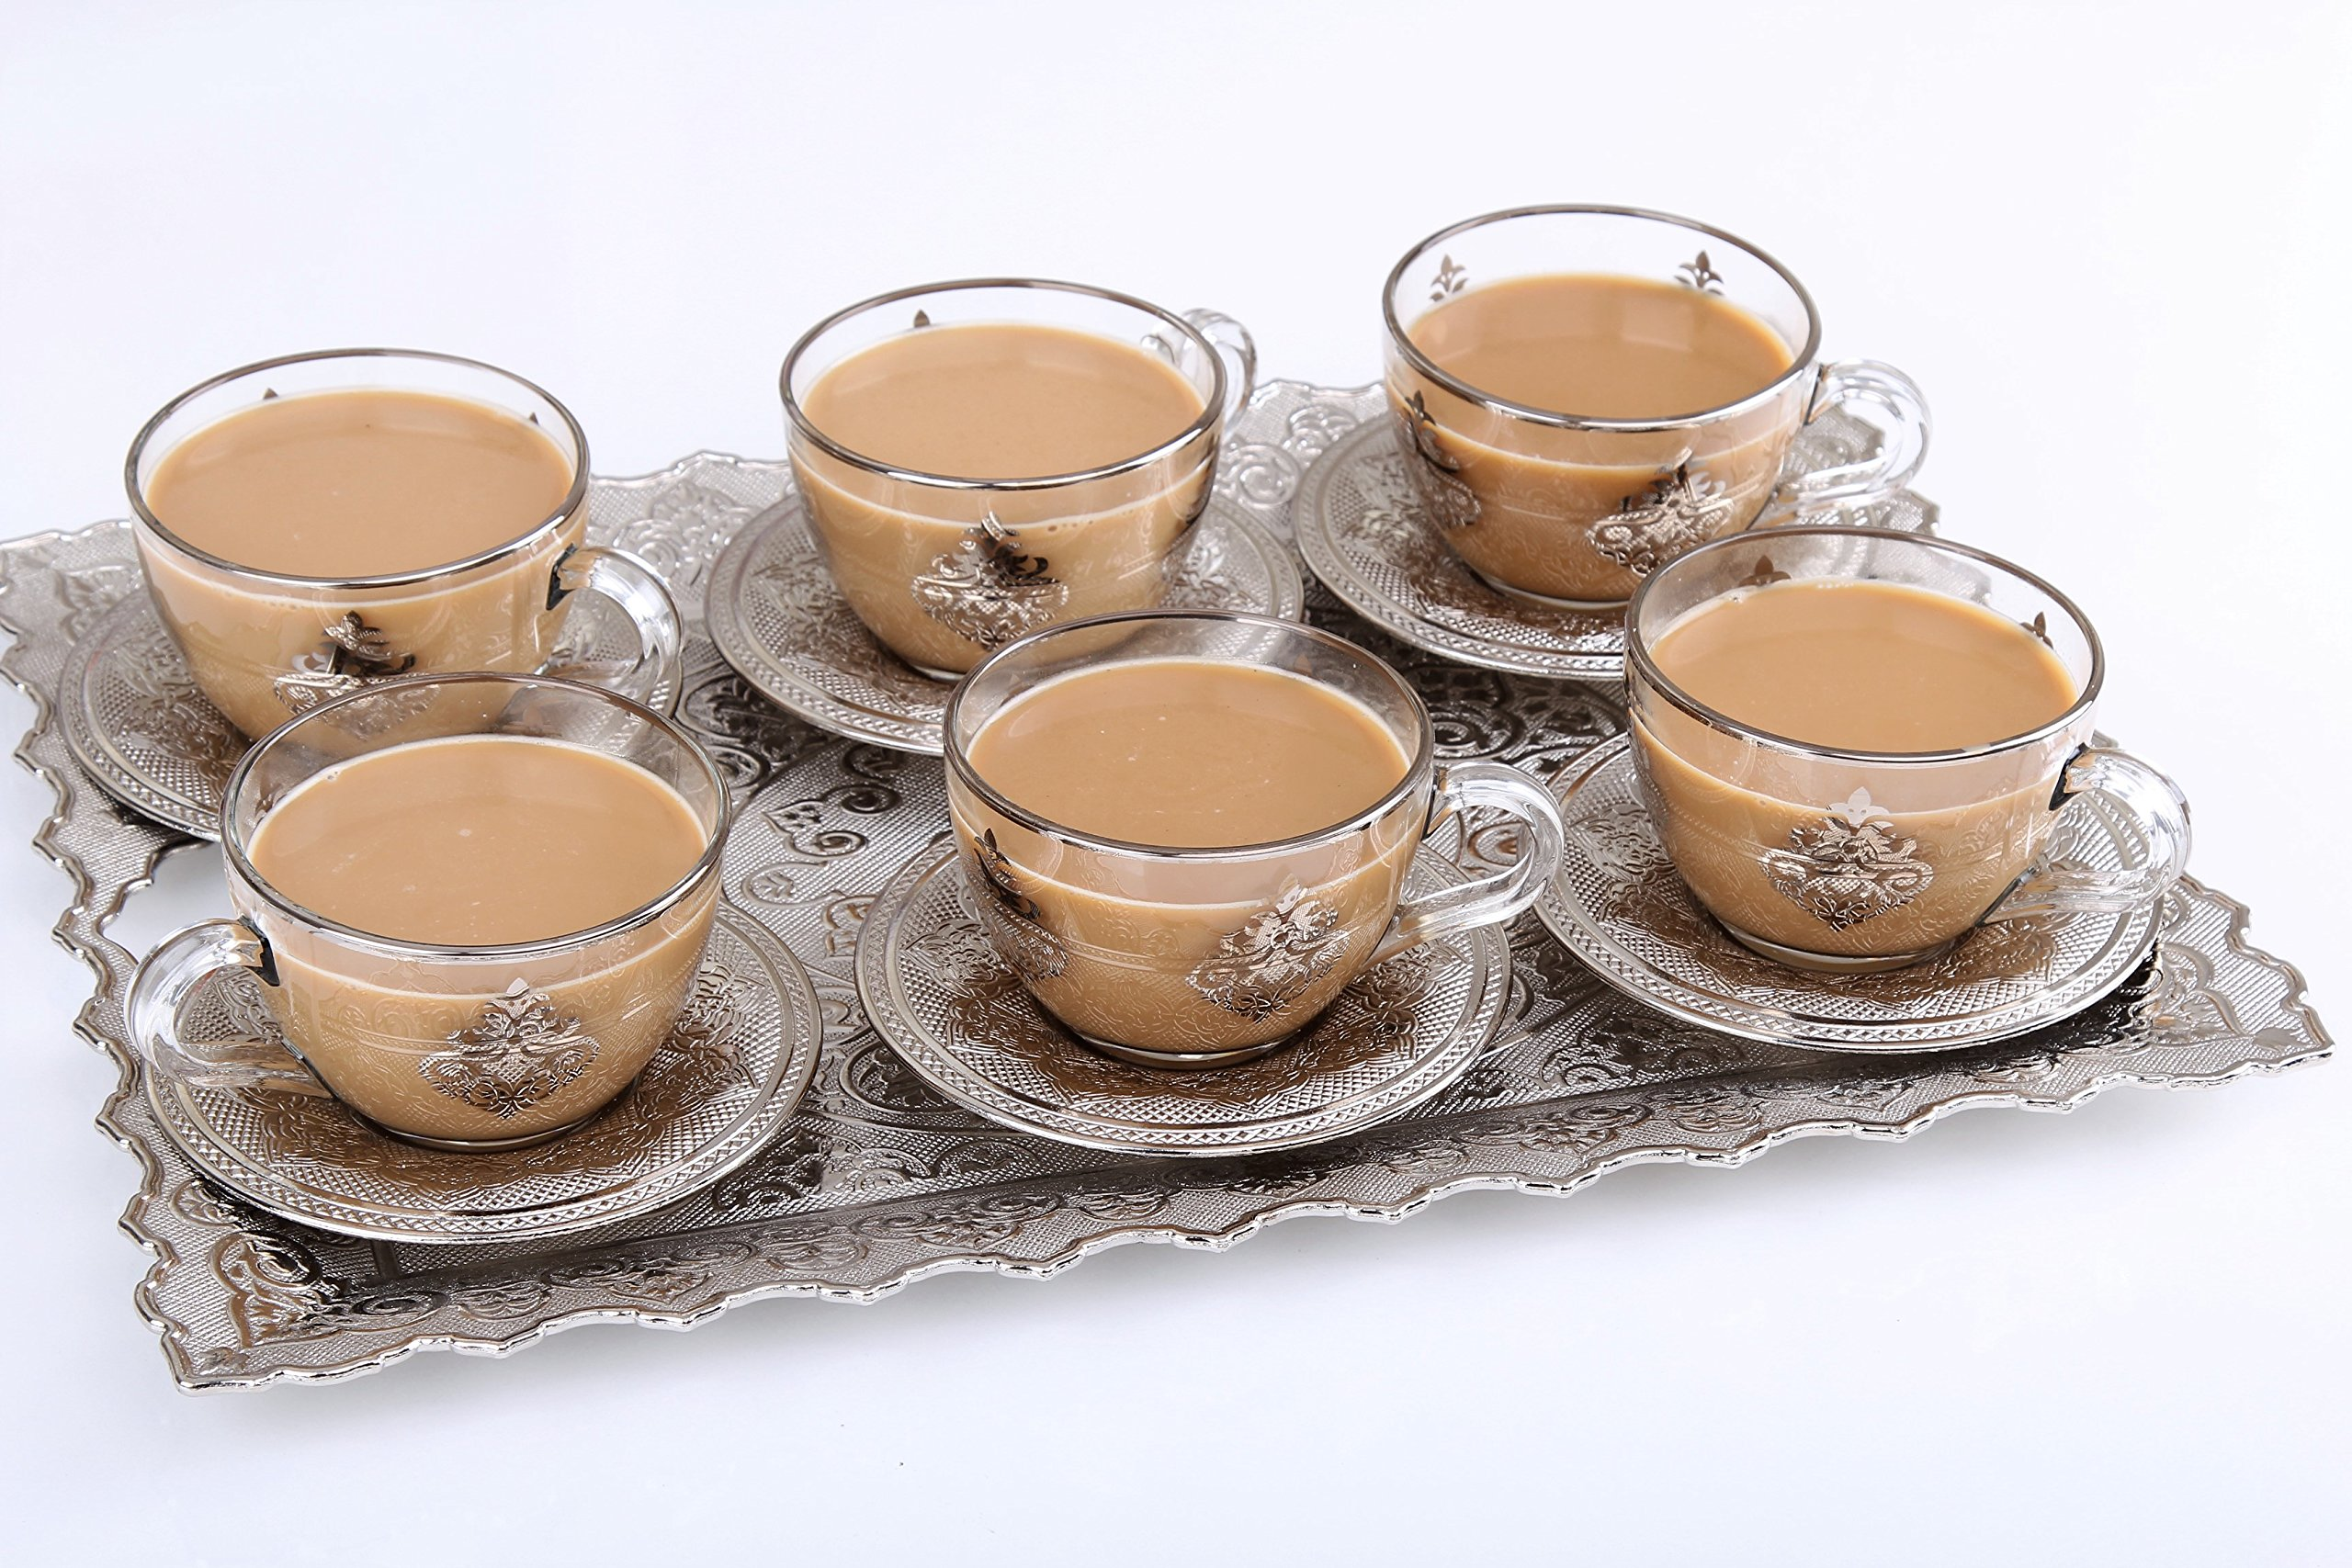 HIGH END Silver plated Coffee and Tea cup Set for 6 - NEW 2017 MODEL - Made in Turkey - 12 pieced METAL set including in Gift Box, Silver